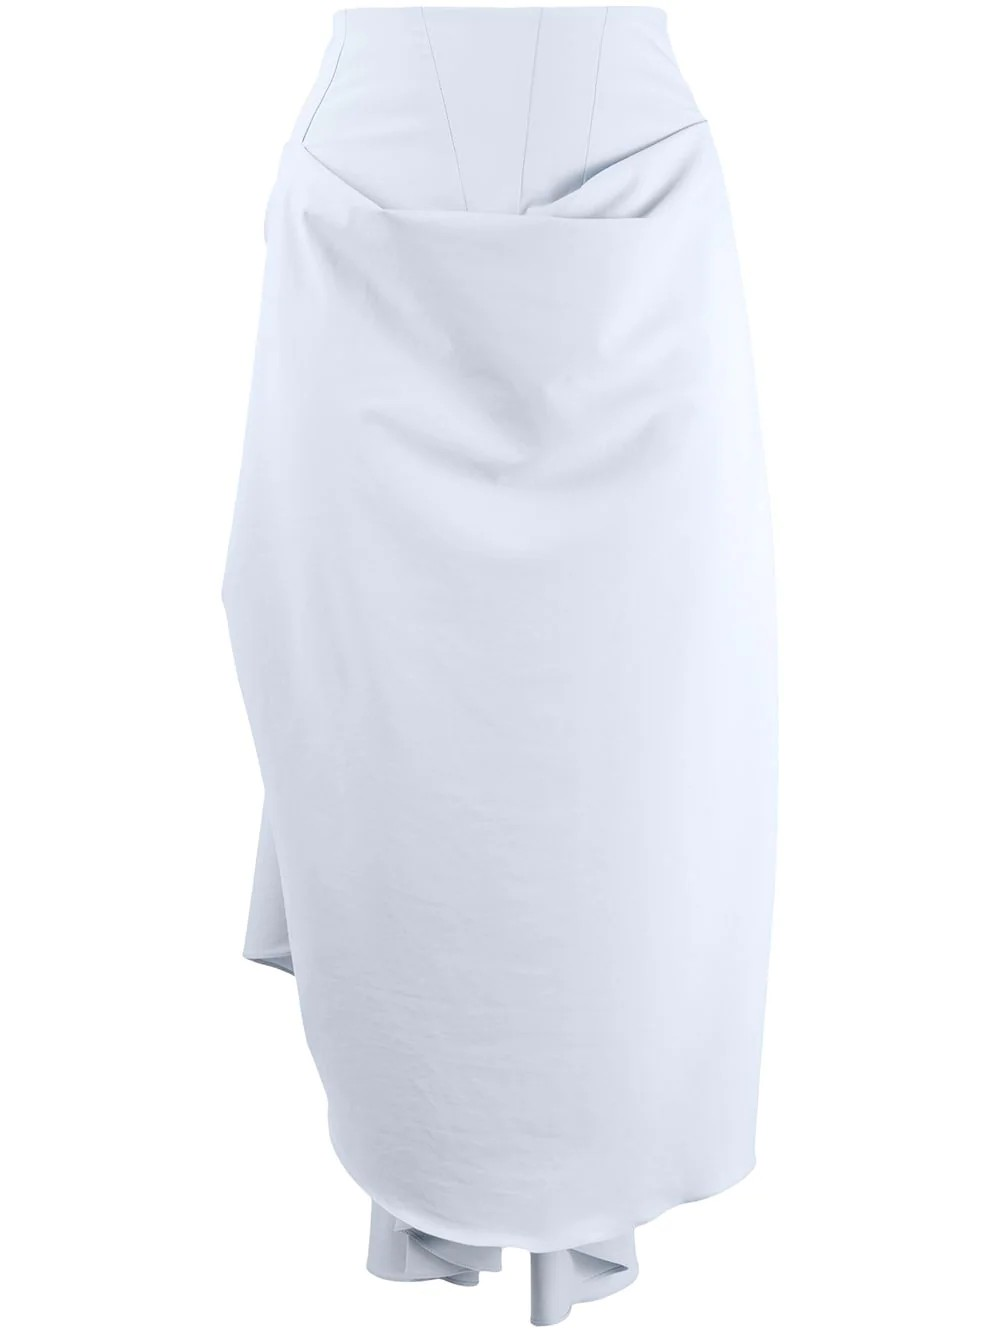 HIGH WAISTED DRAPE SKIRT WITH BACK GATHERING